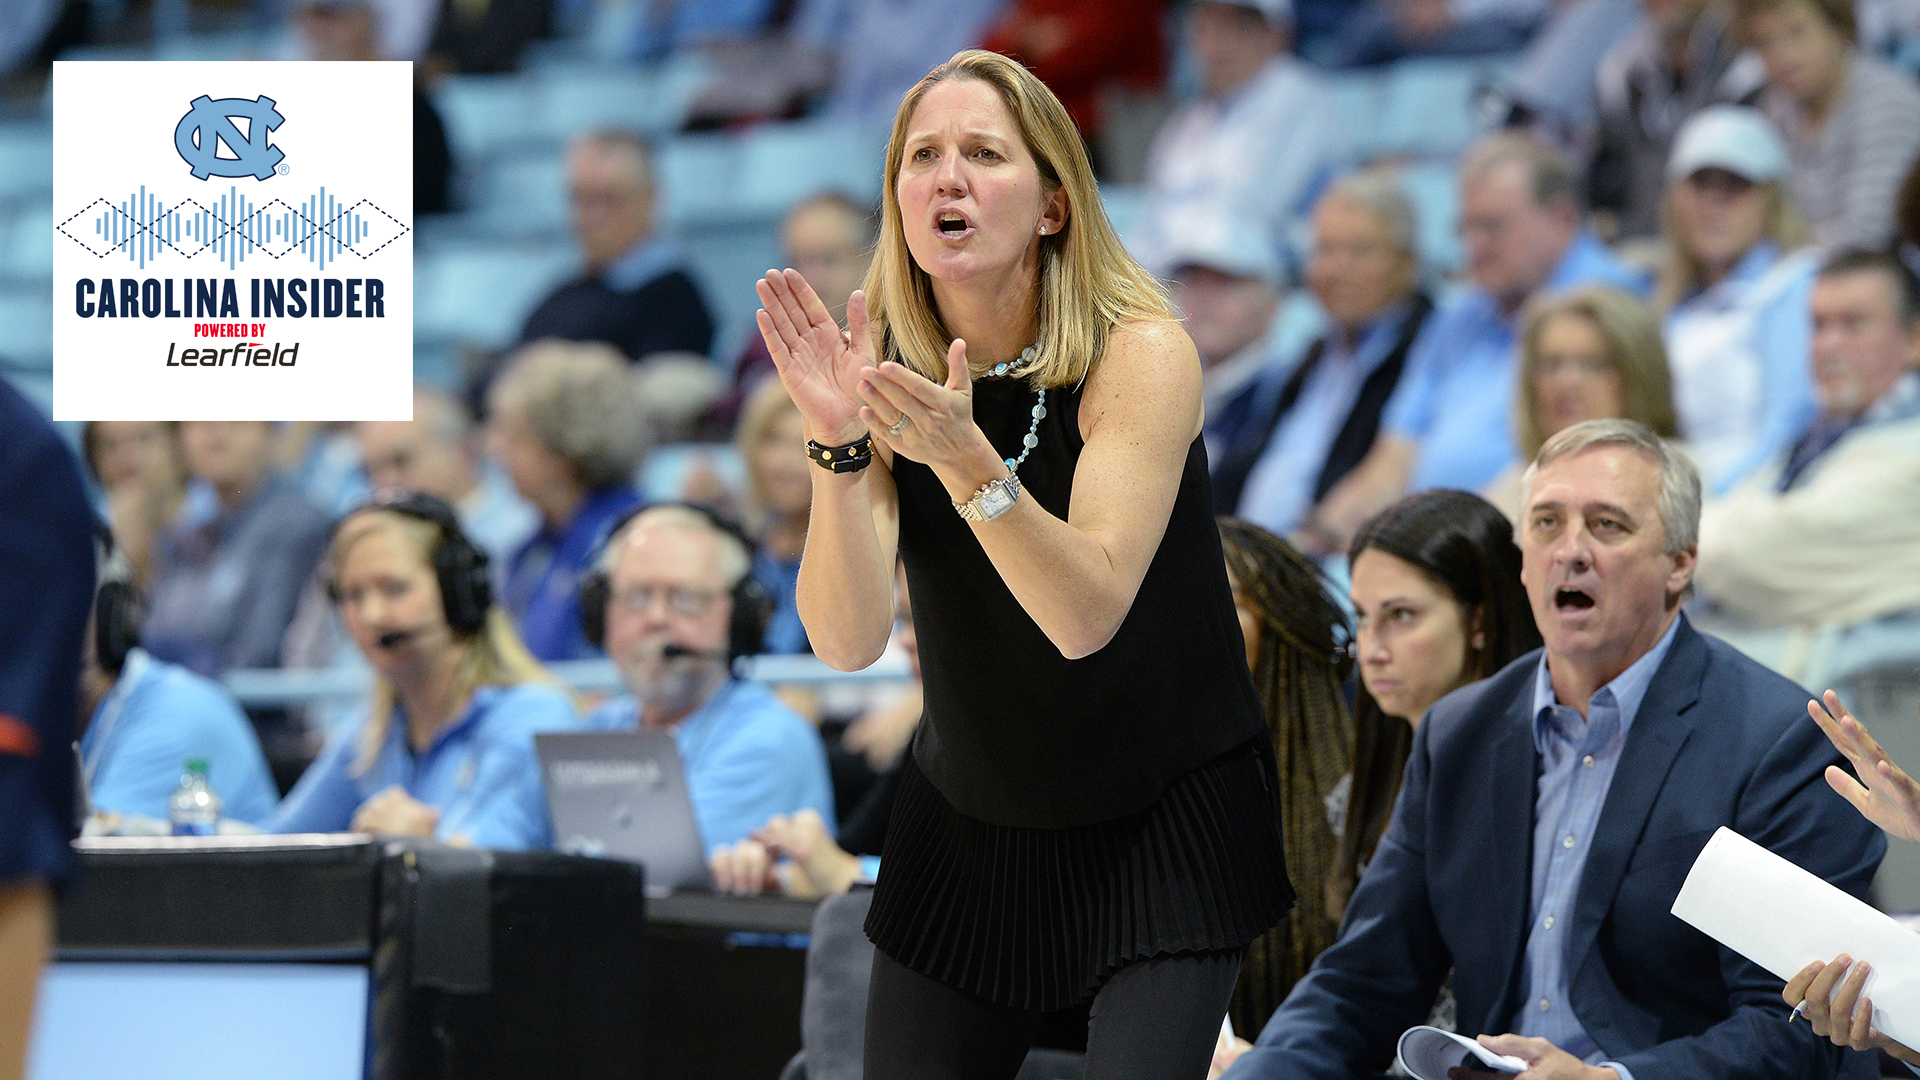 Podcast: Courtney Banghart Show - Team growth, a Pat Summitt story, and more